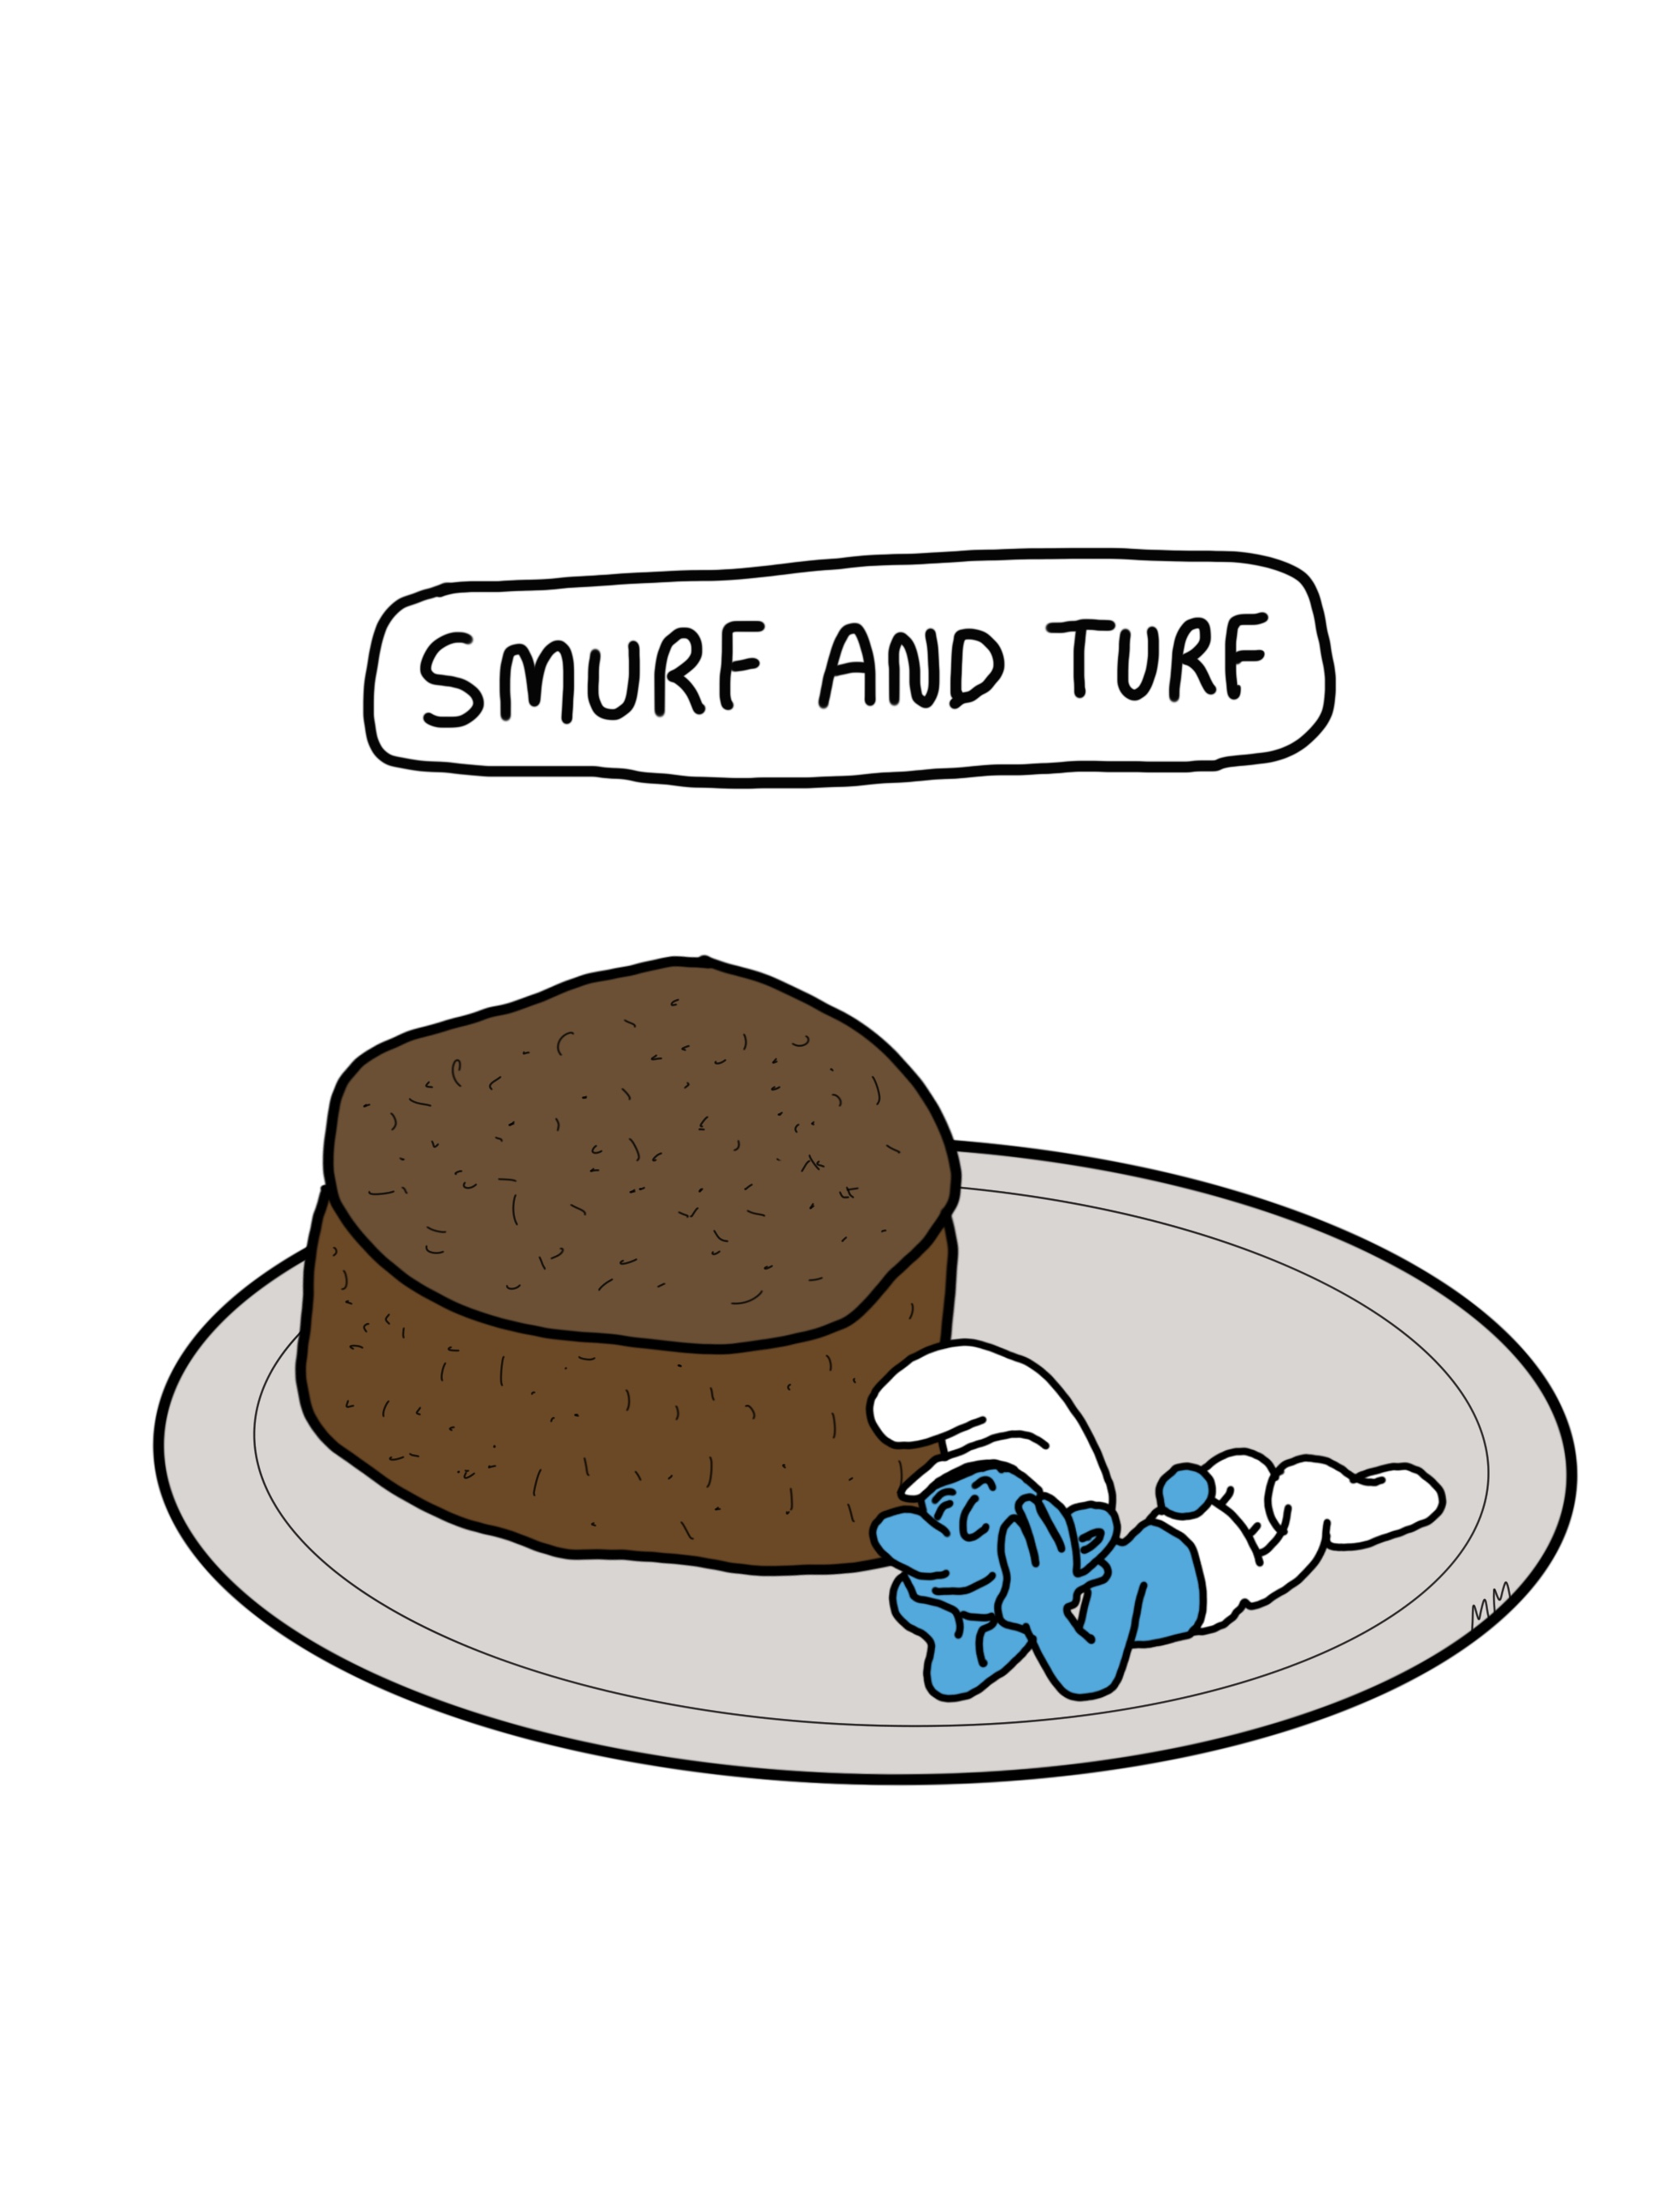 Smurf And Turf